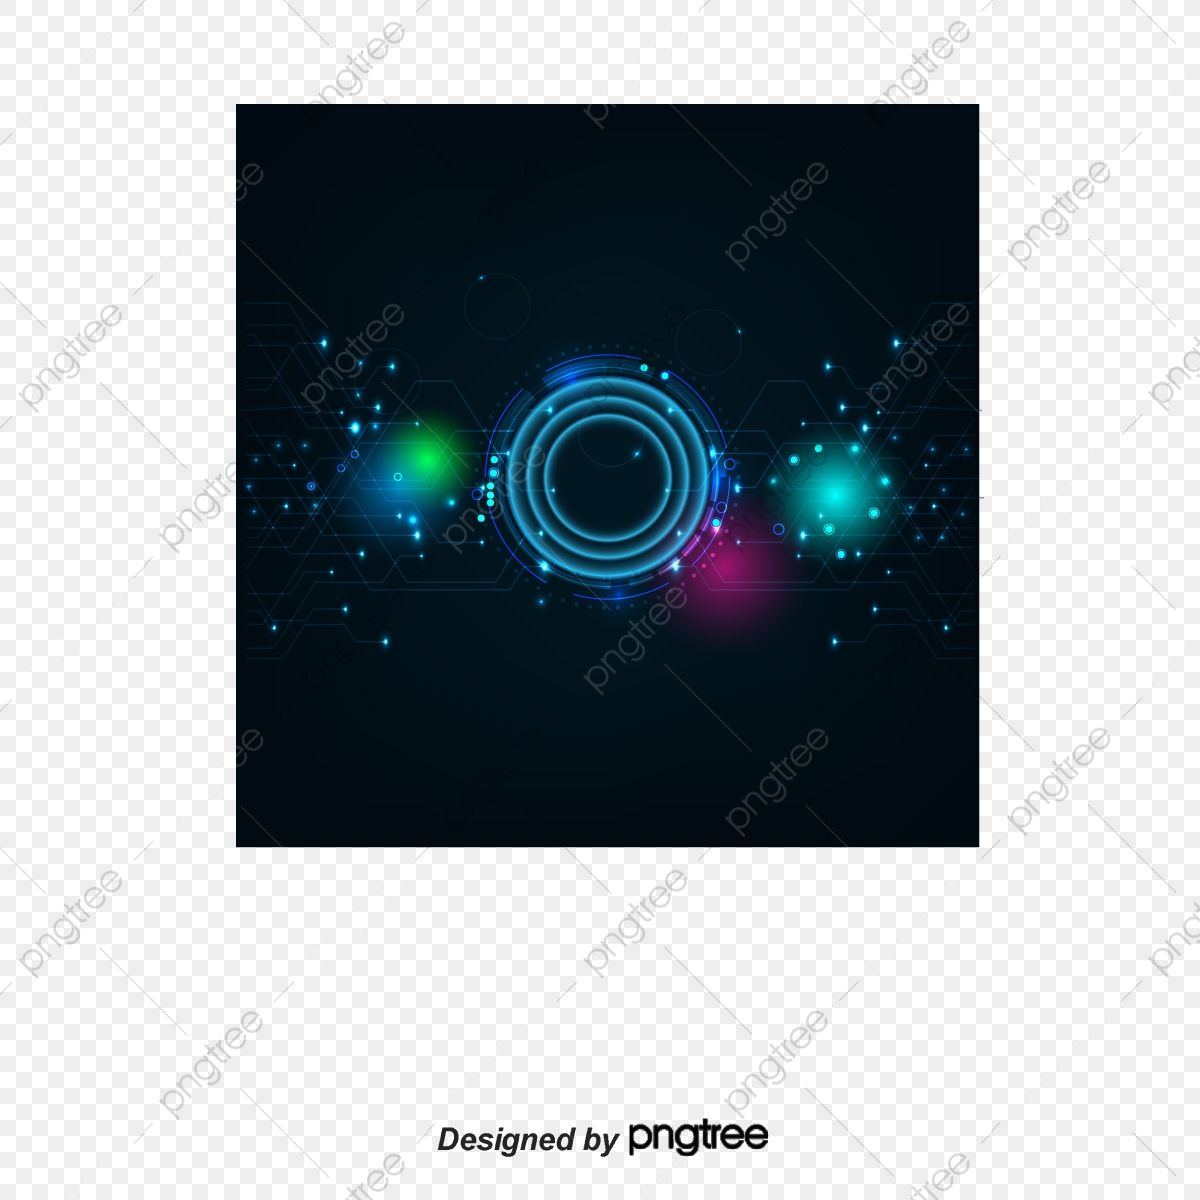 Download This Vector Information Technology Blue Light Science Transparent Png Or Vector File Fo In 2020 Information Technology Transparent Background Light Science